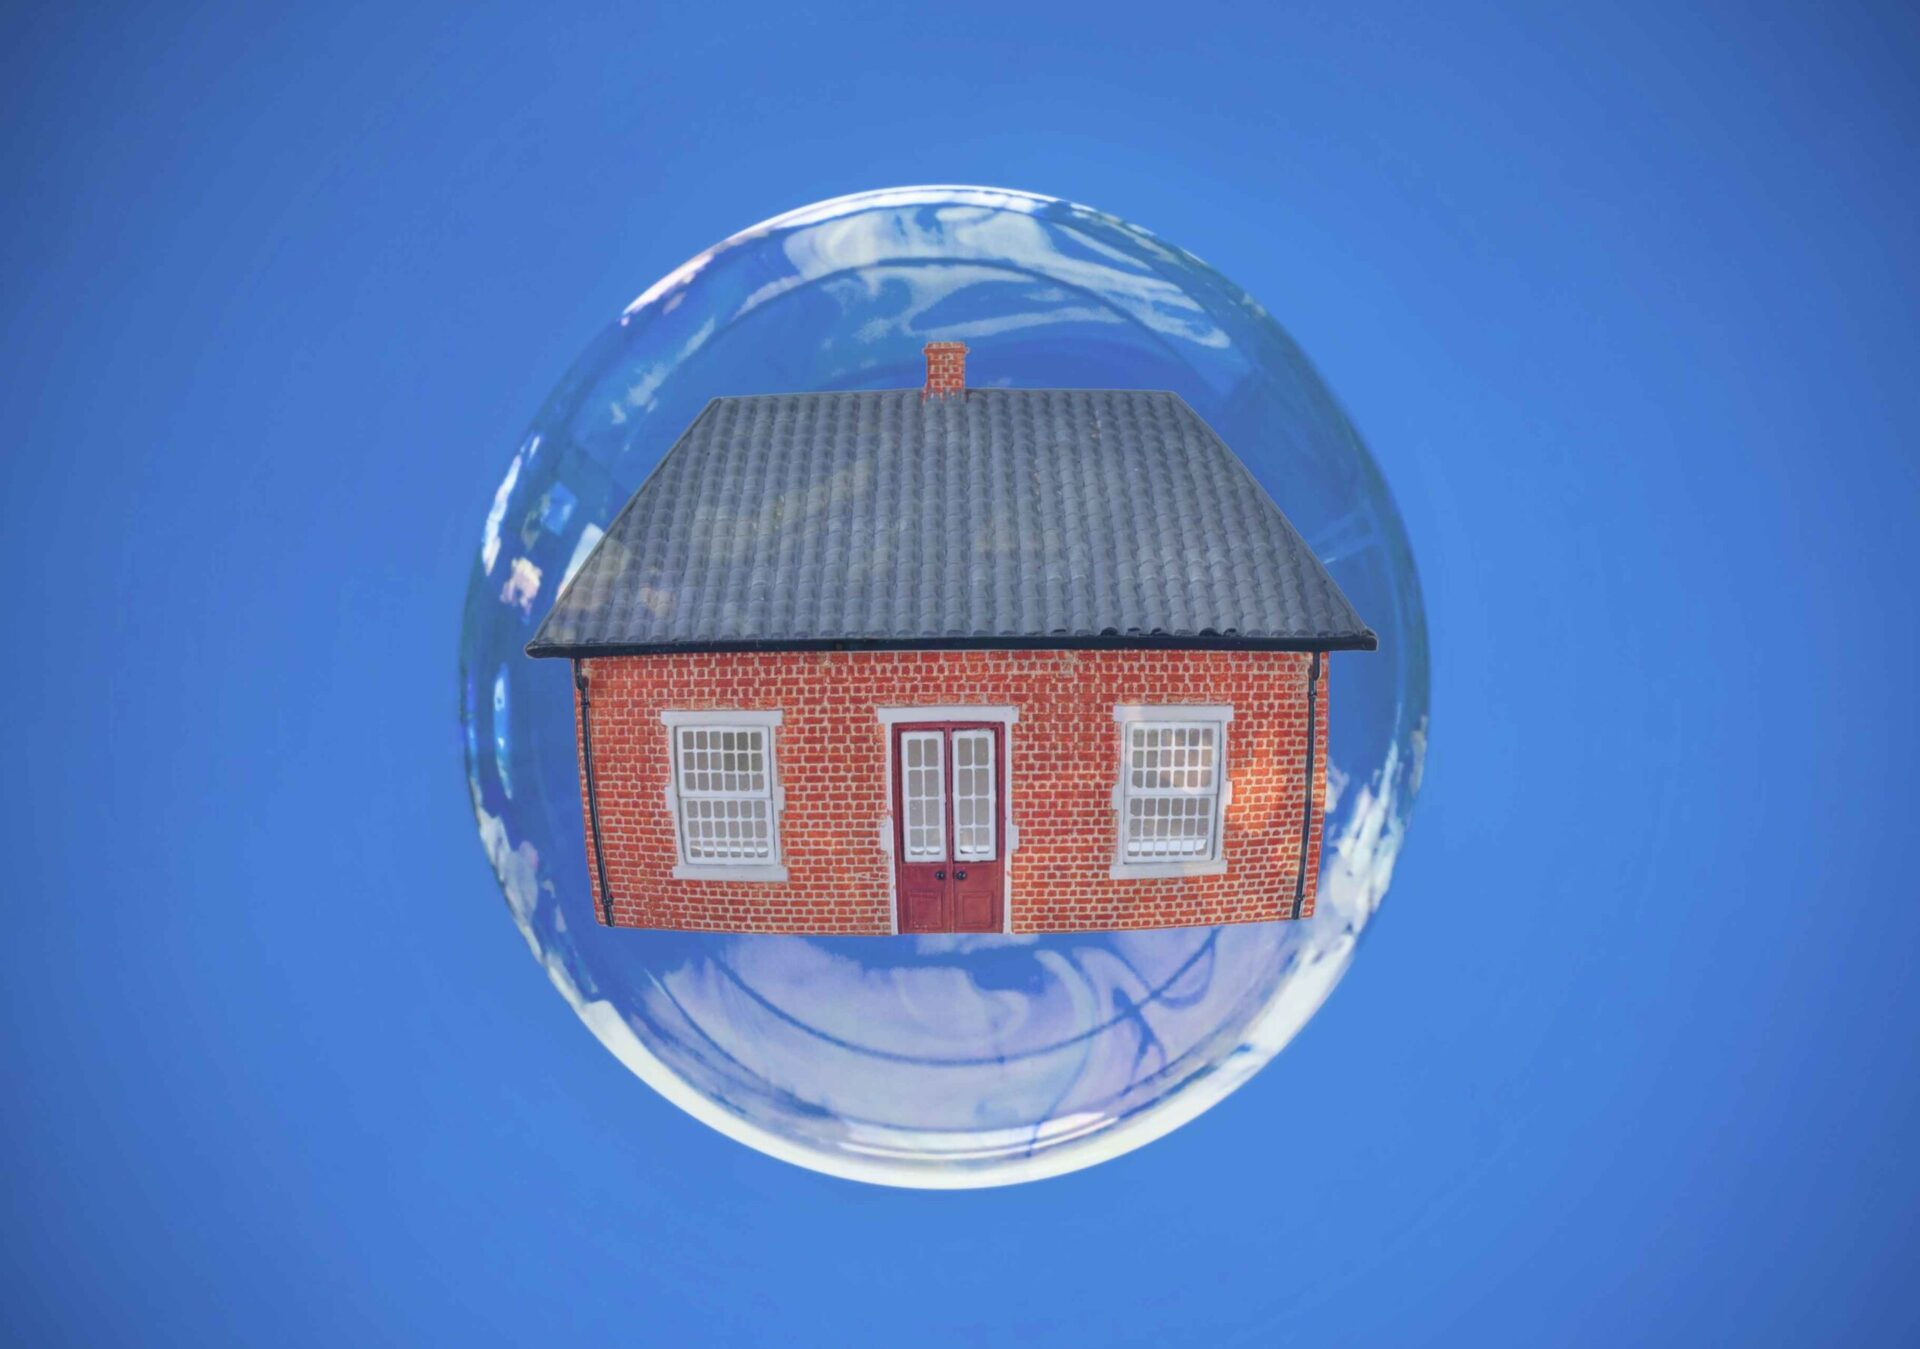 House inside a bubble.  Are we in a property bubble?